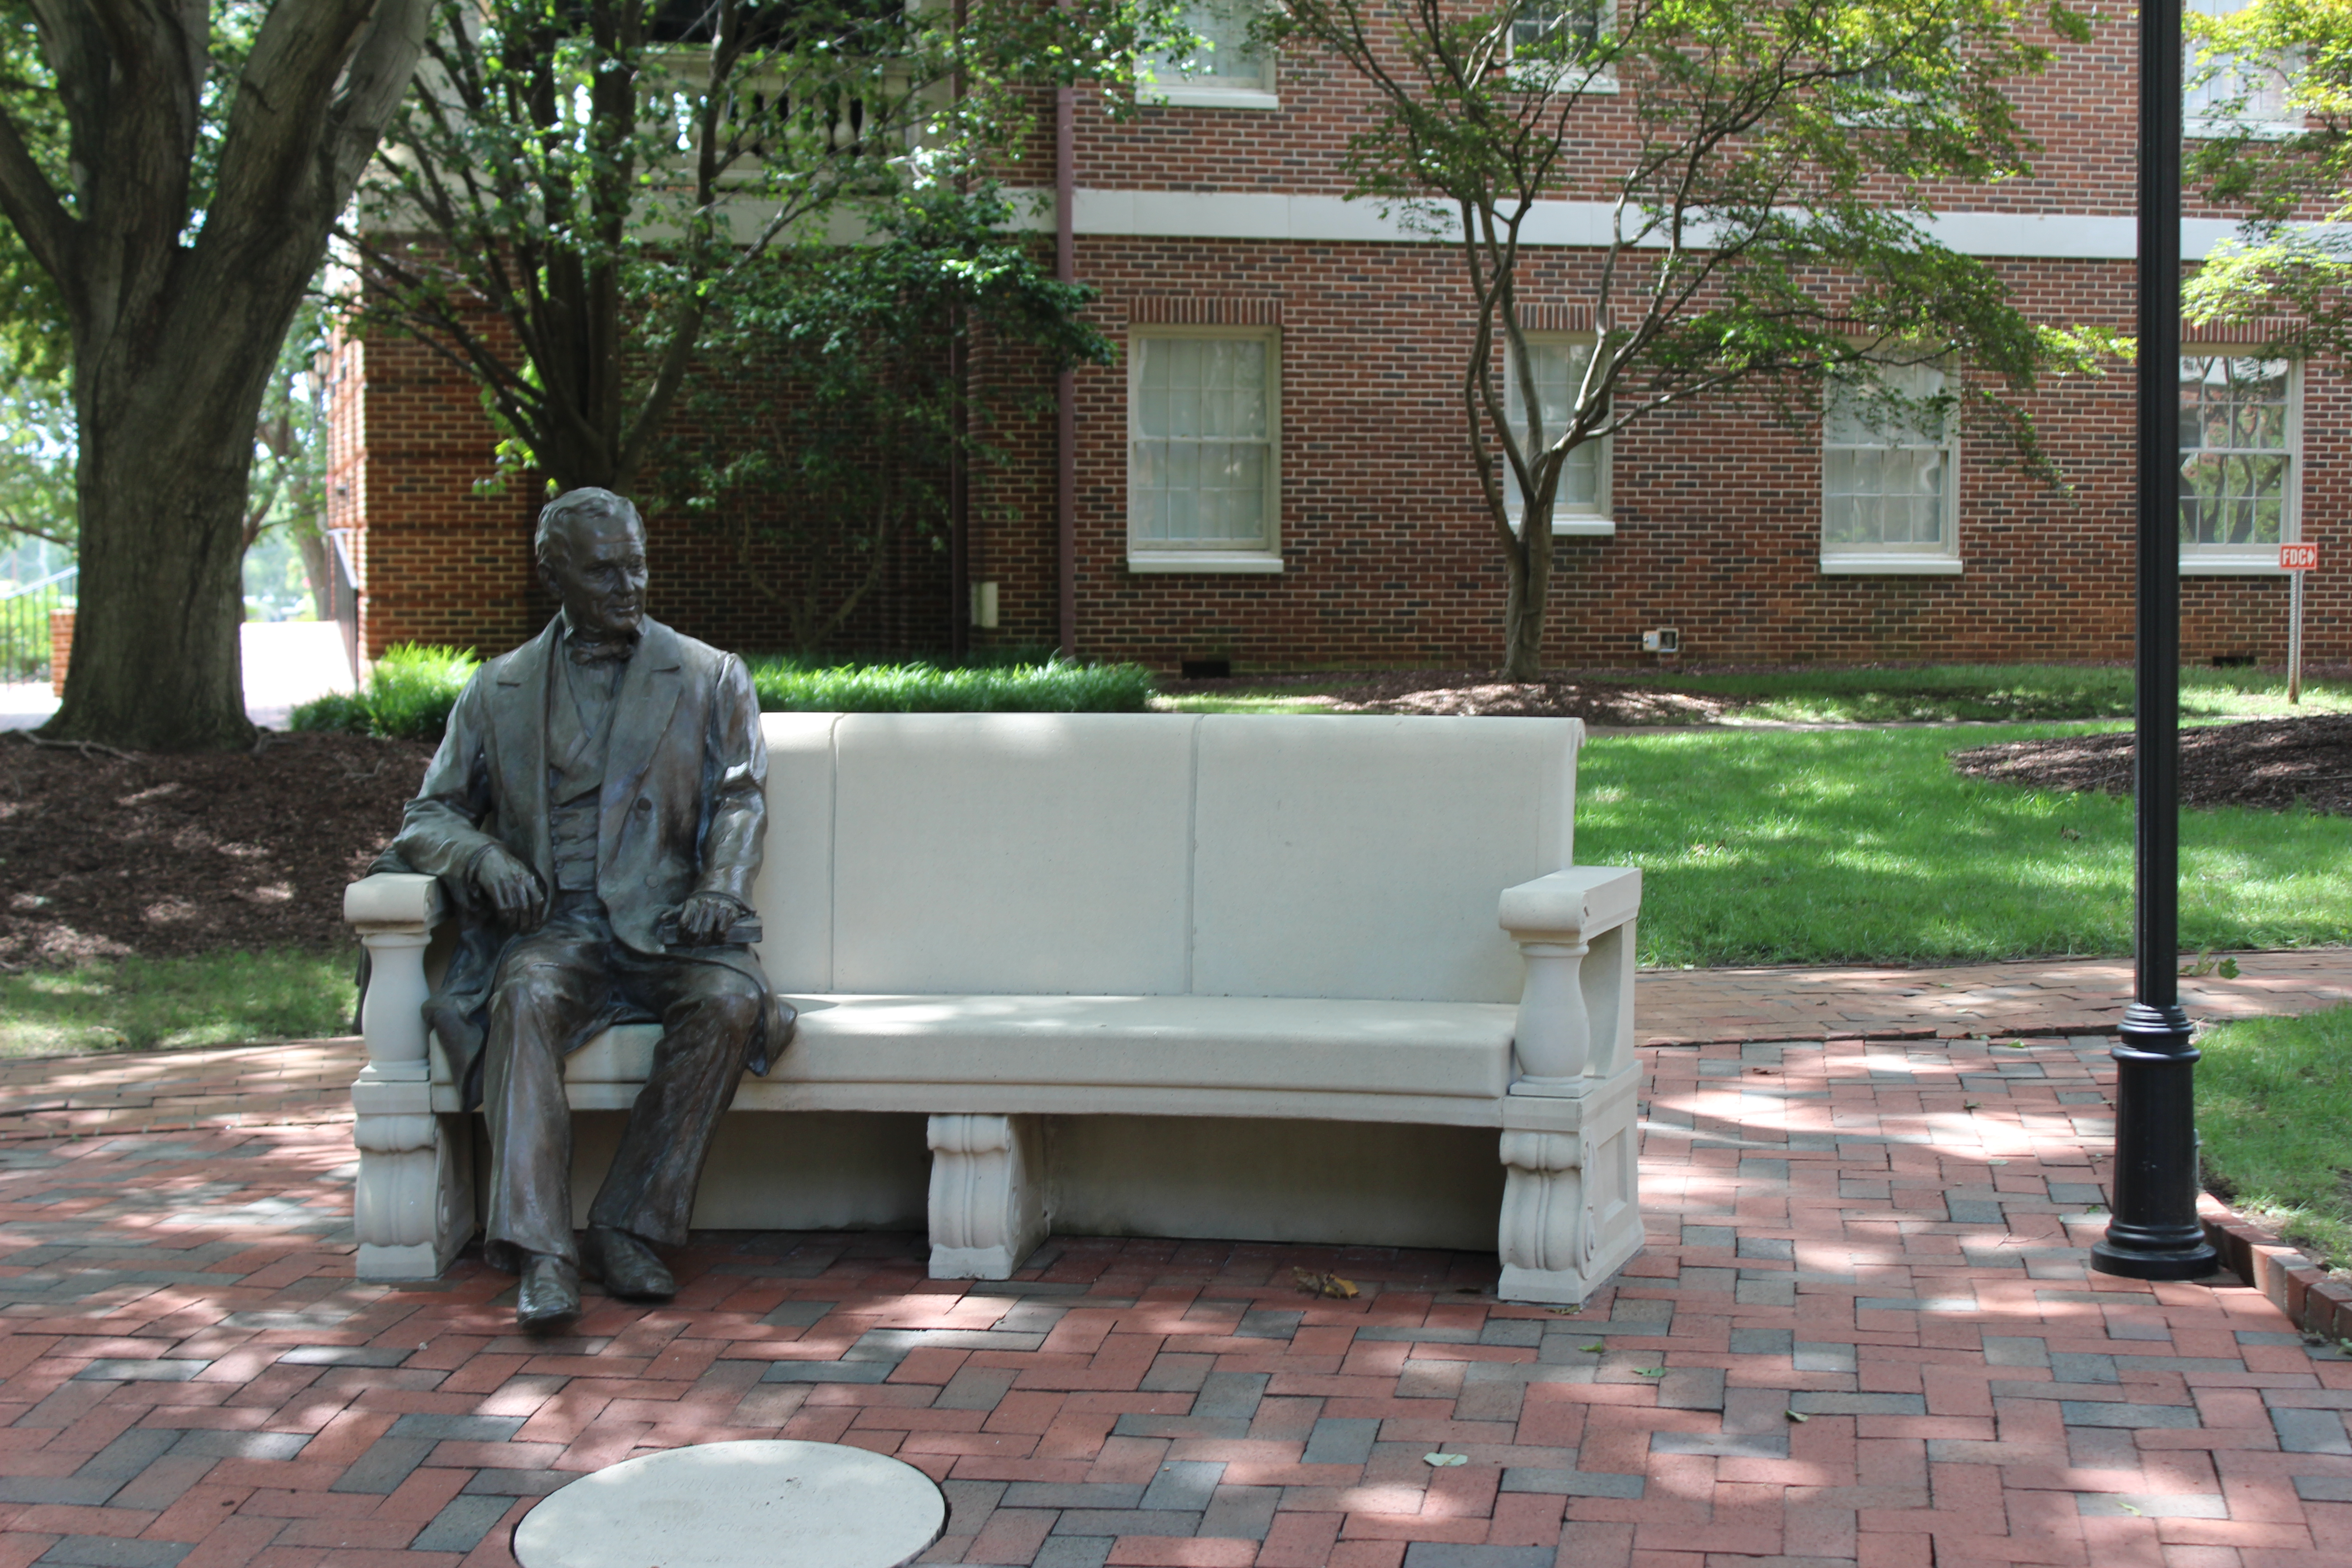 The eponymous William Peace.  Sculpture dedicated in 2007 for the school's sesquicentennial.